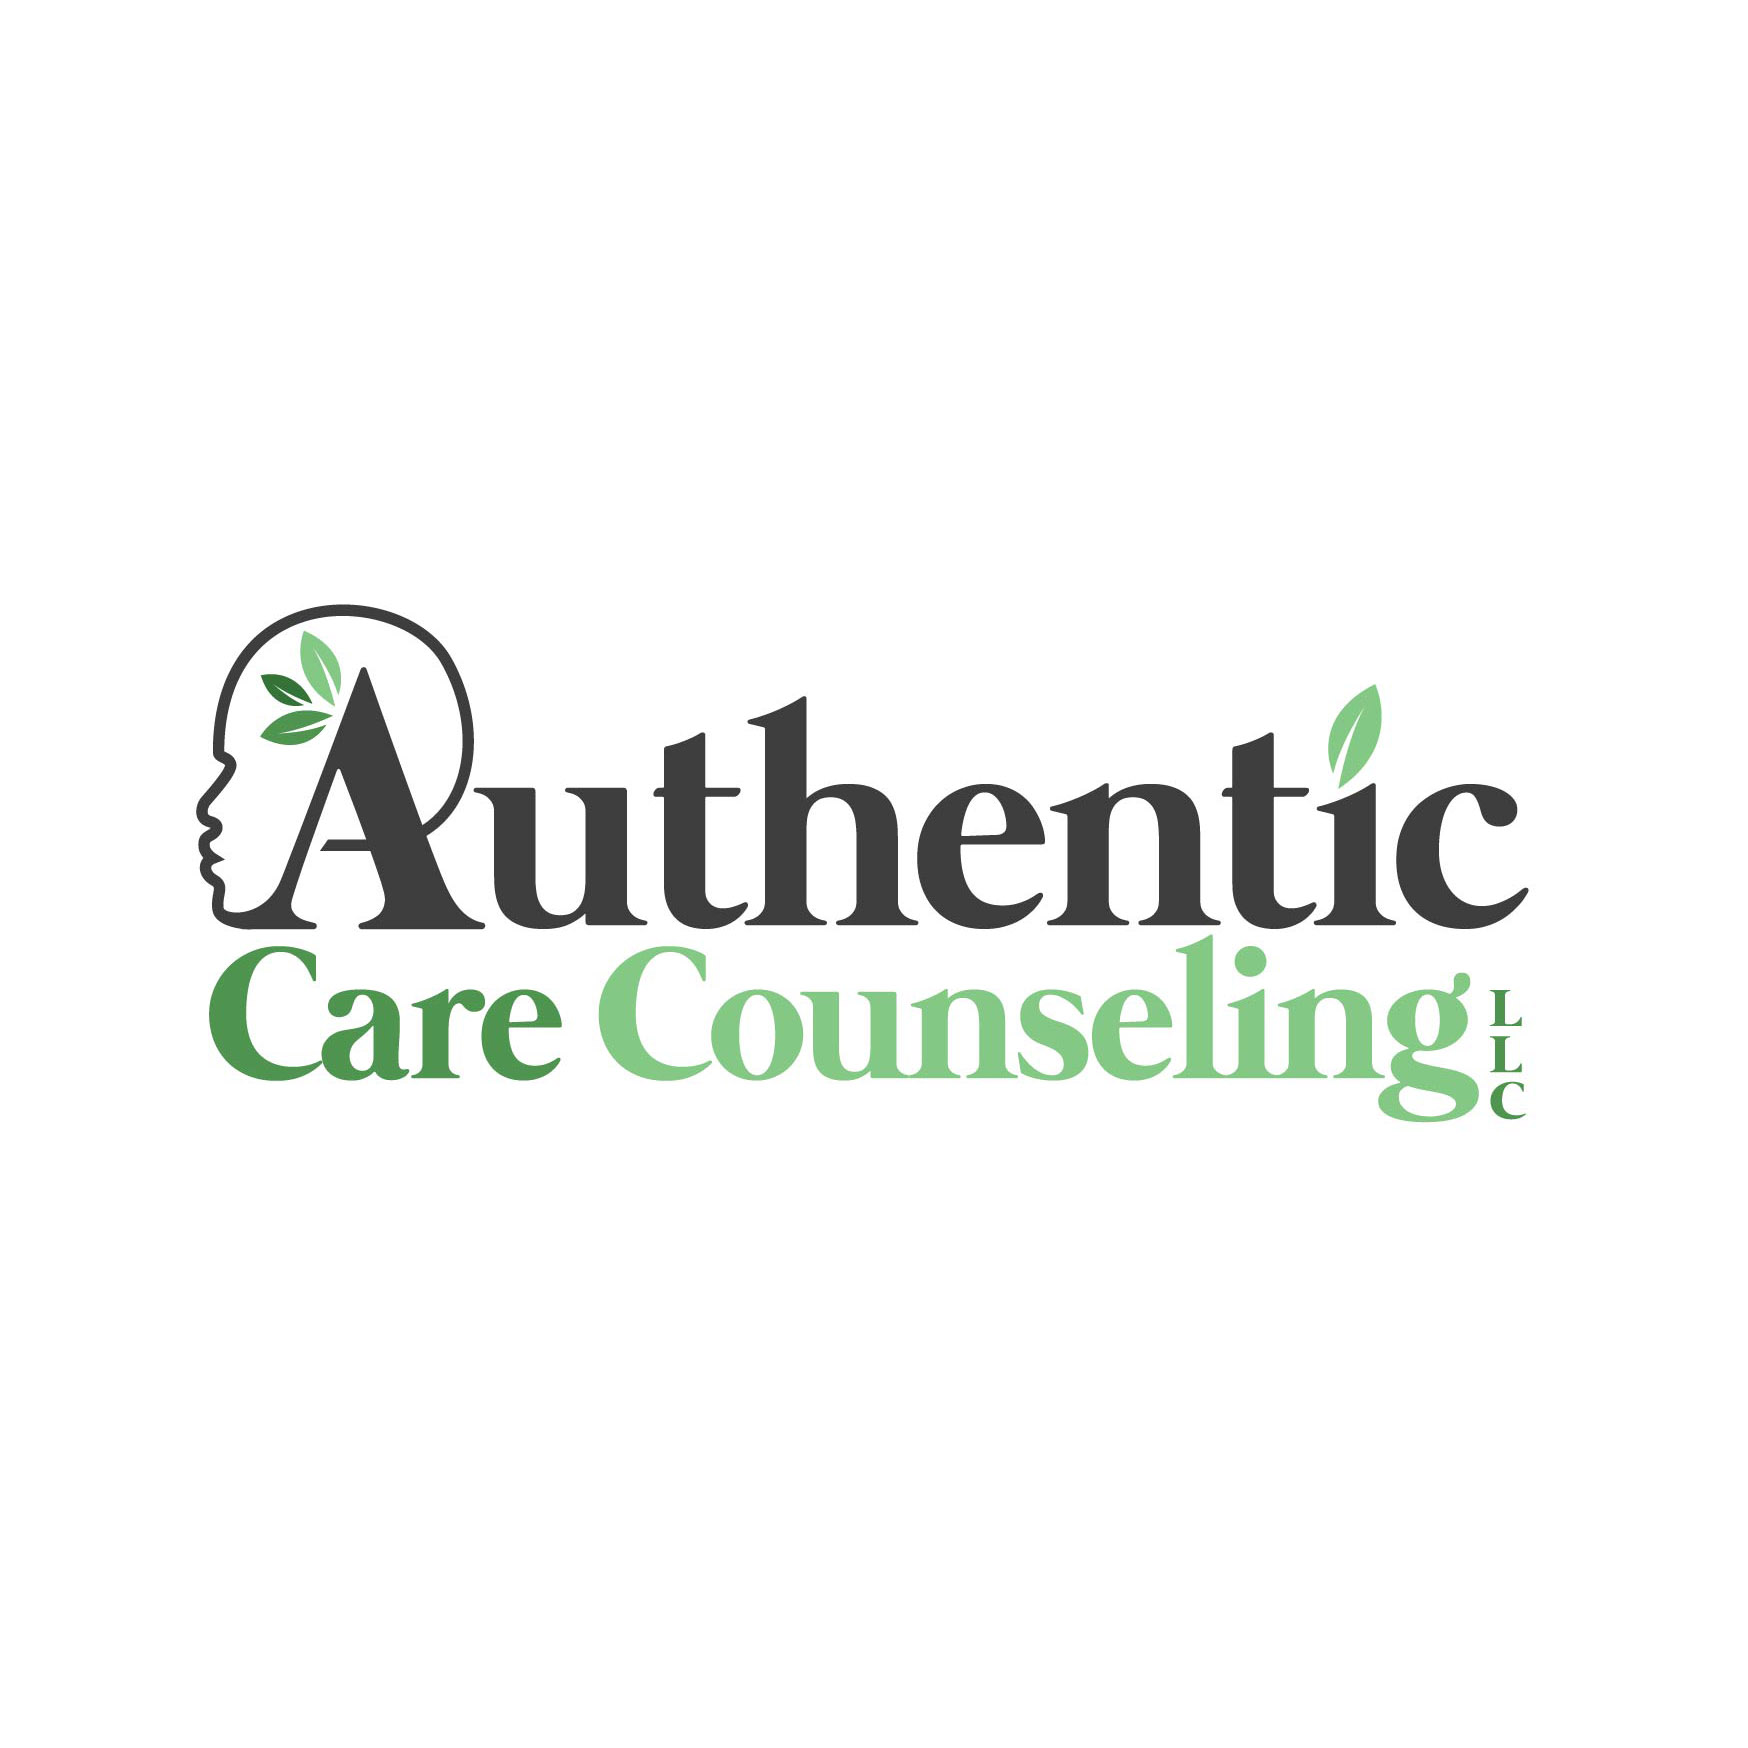 Authentic Care Counseling LLC 4 final 05112020